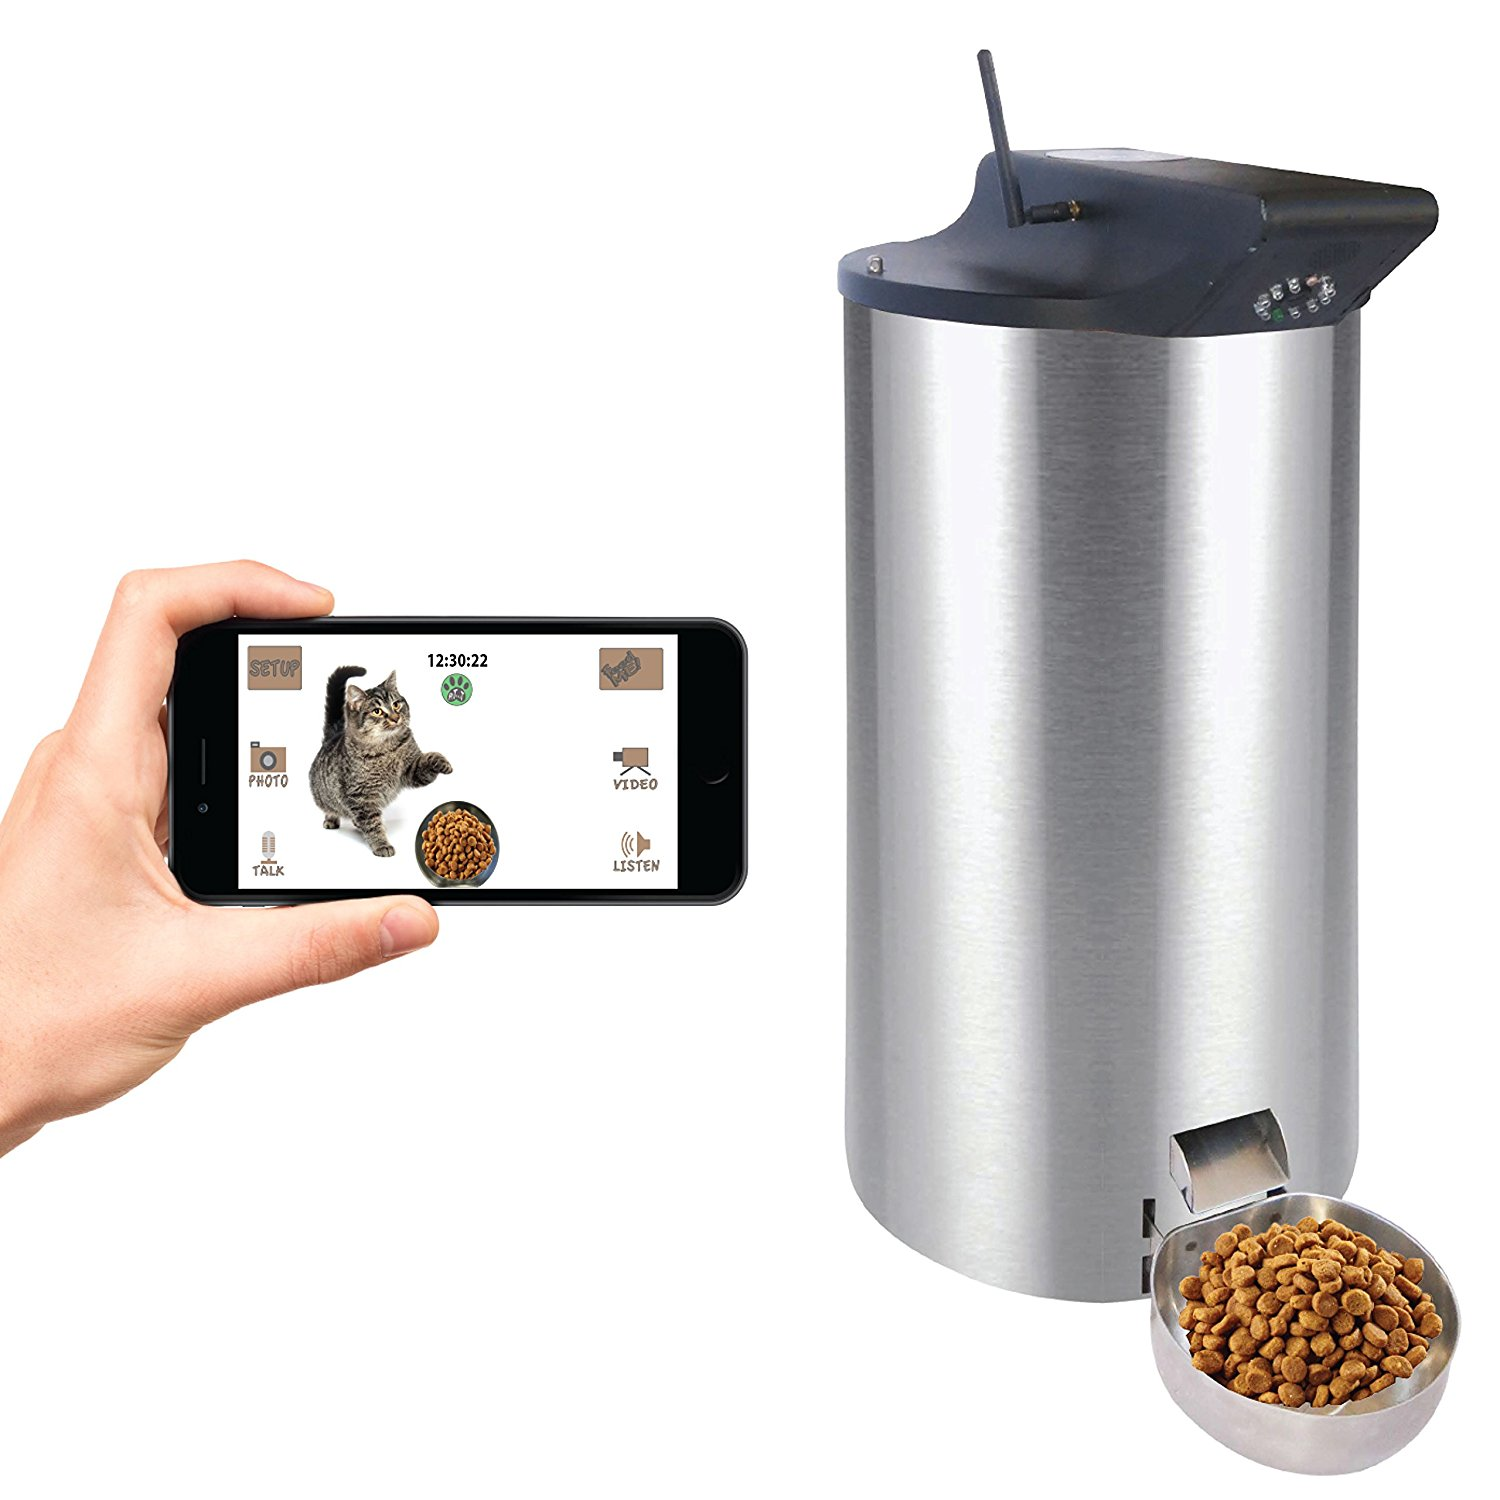 Automatic Dog Food Dispenser Reviews